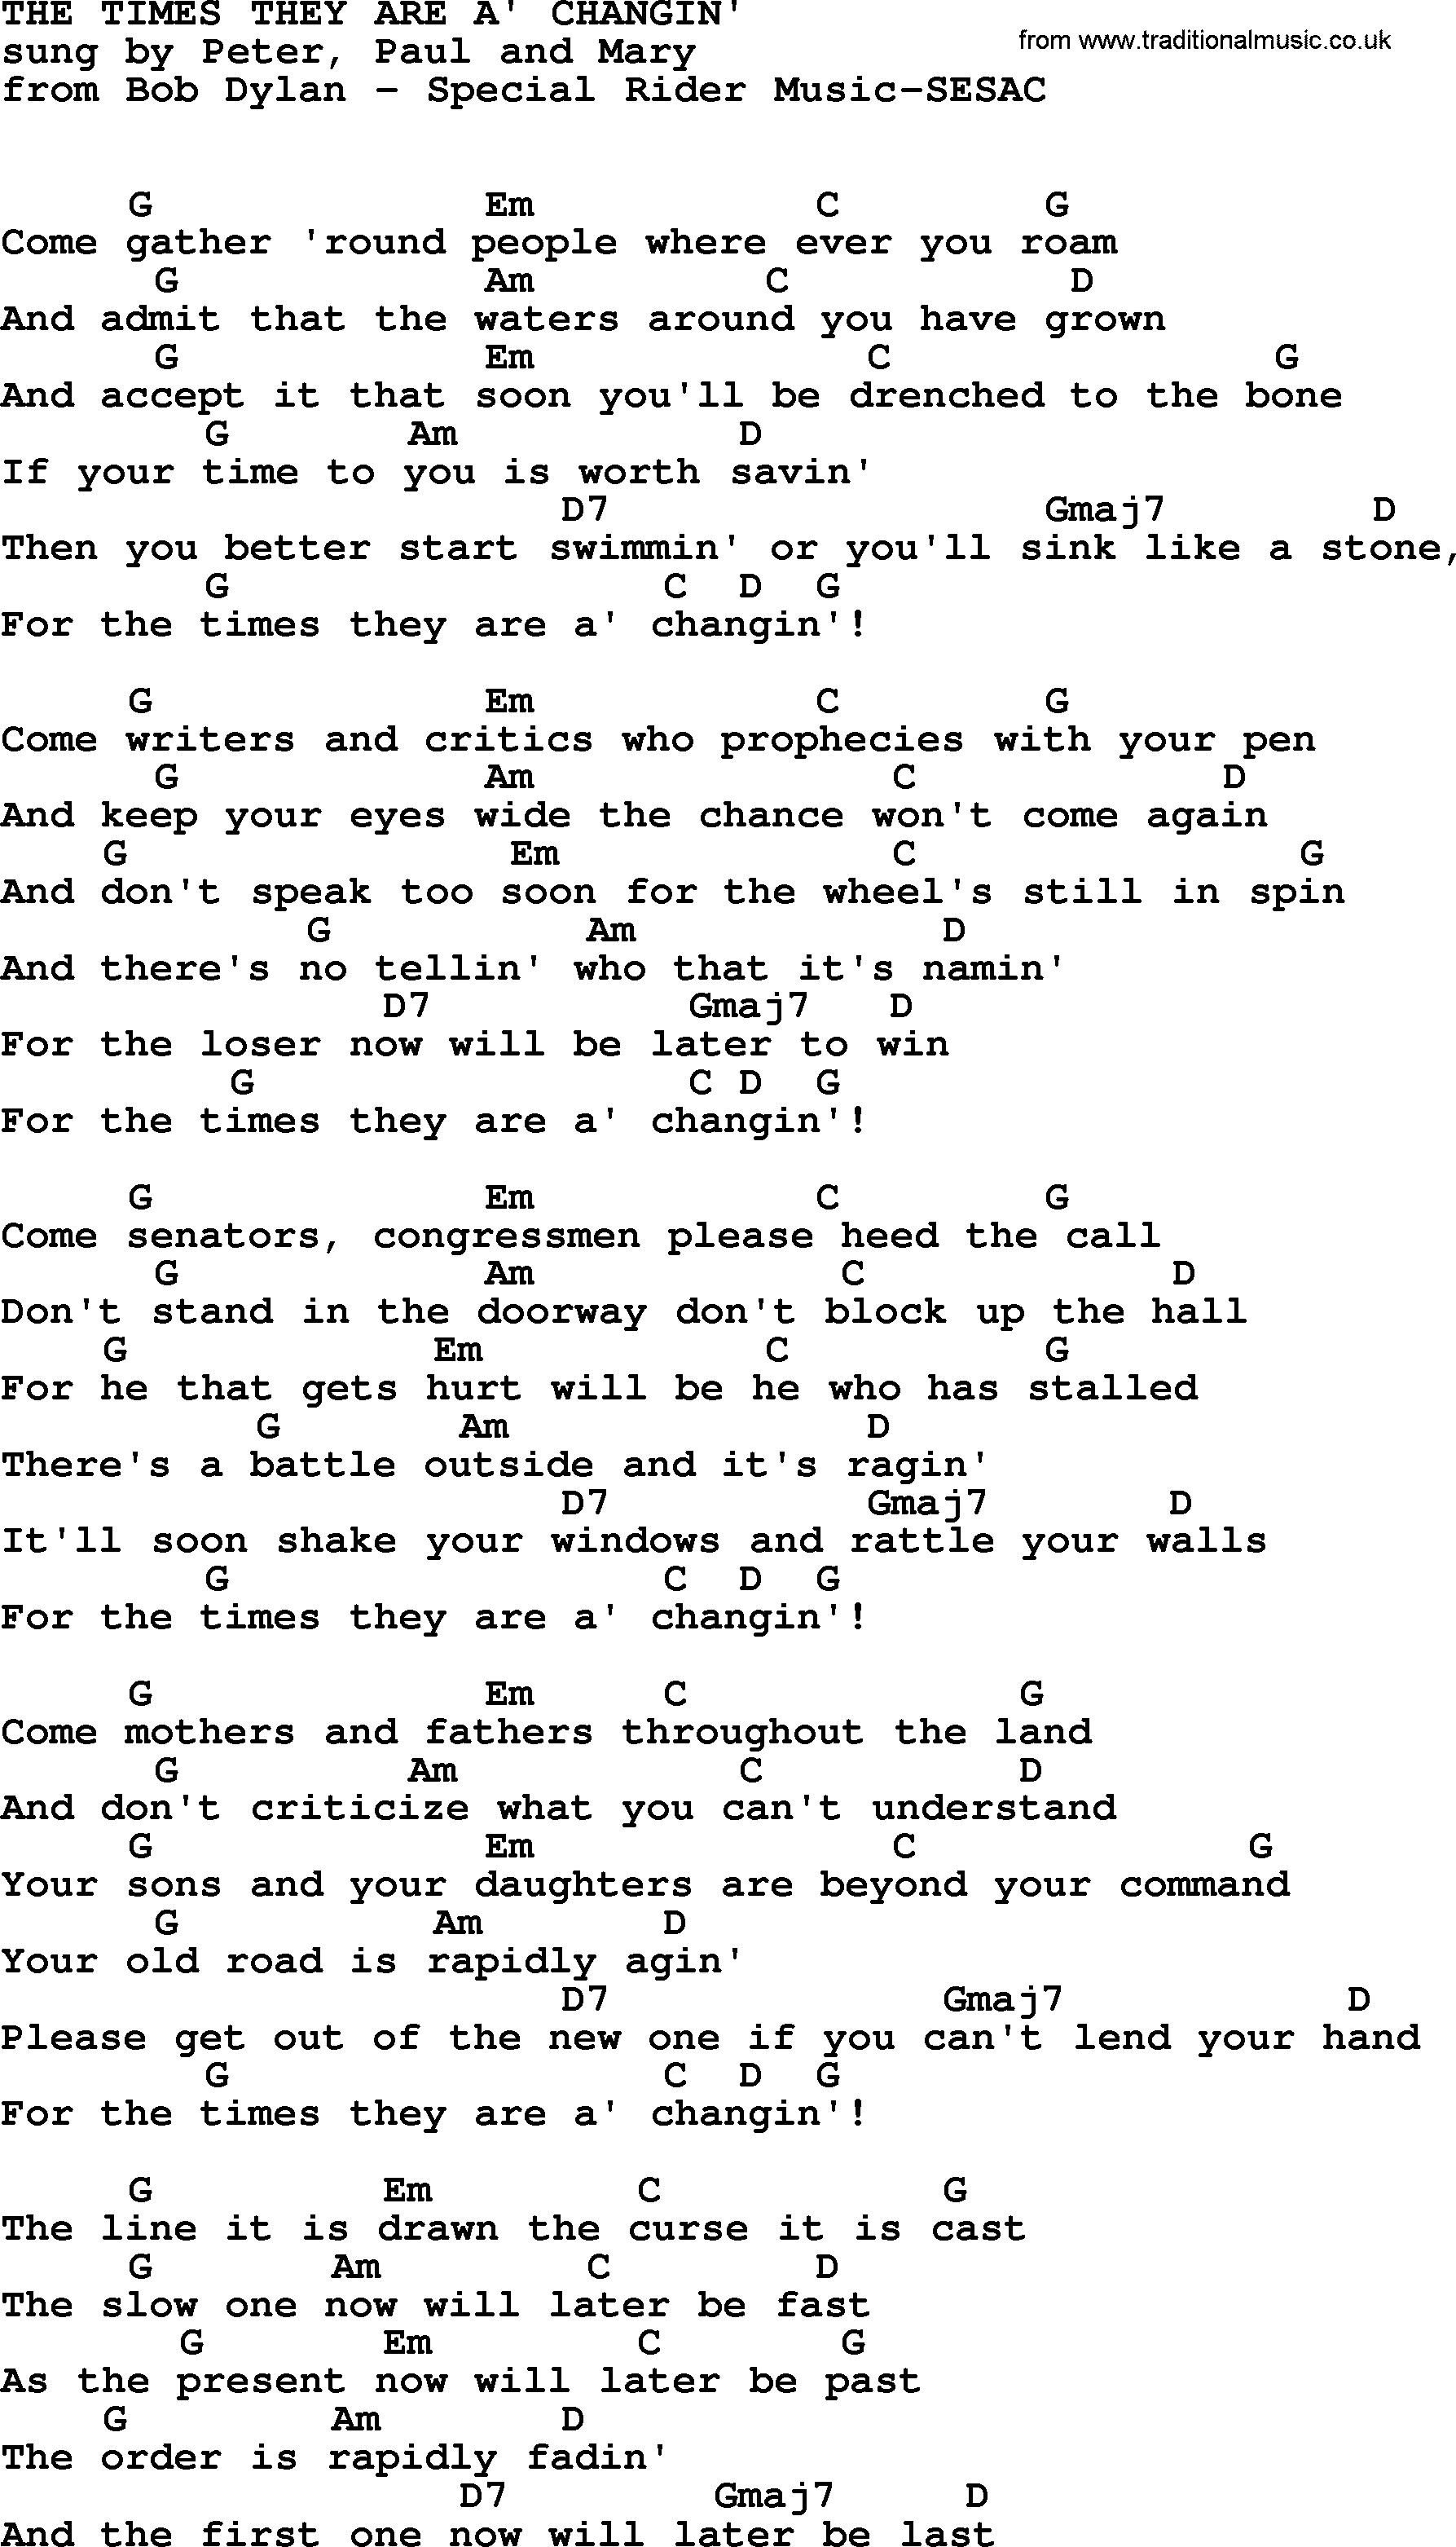 Peter paul and mary song the times they are a changing lyrics peter paul and mary song the times they are a changing lyrics and chords hexwebz Images